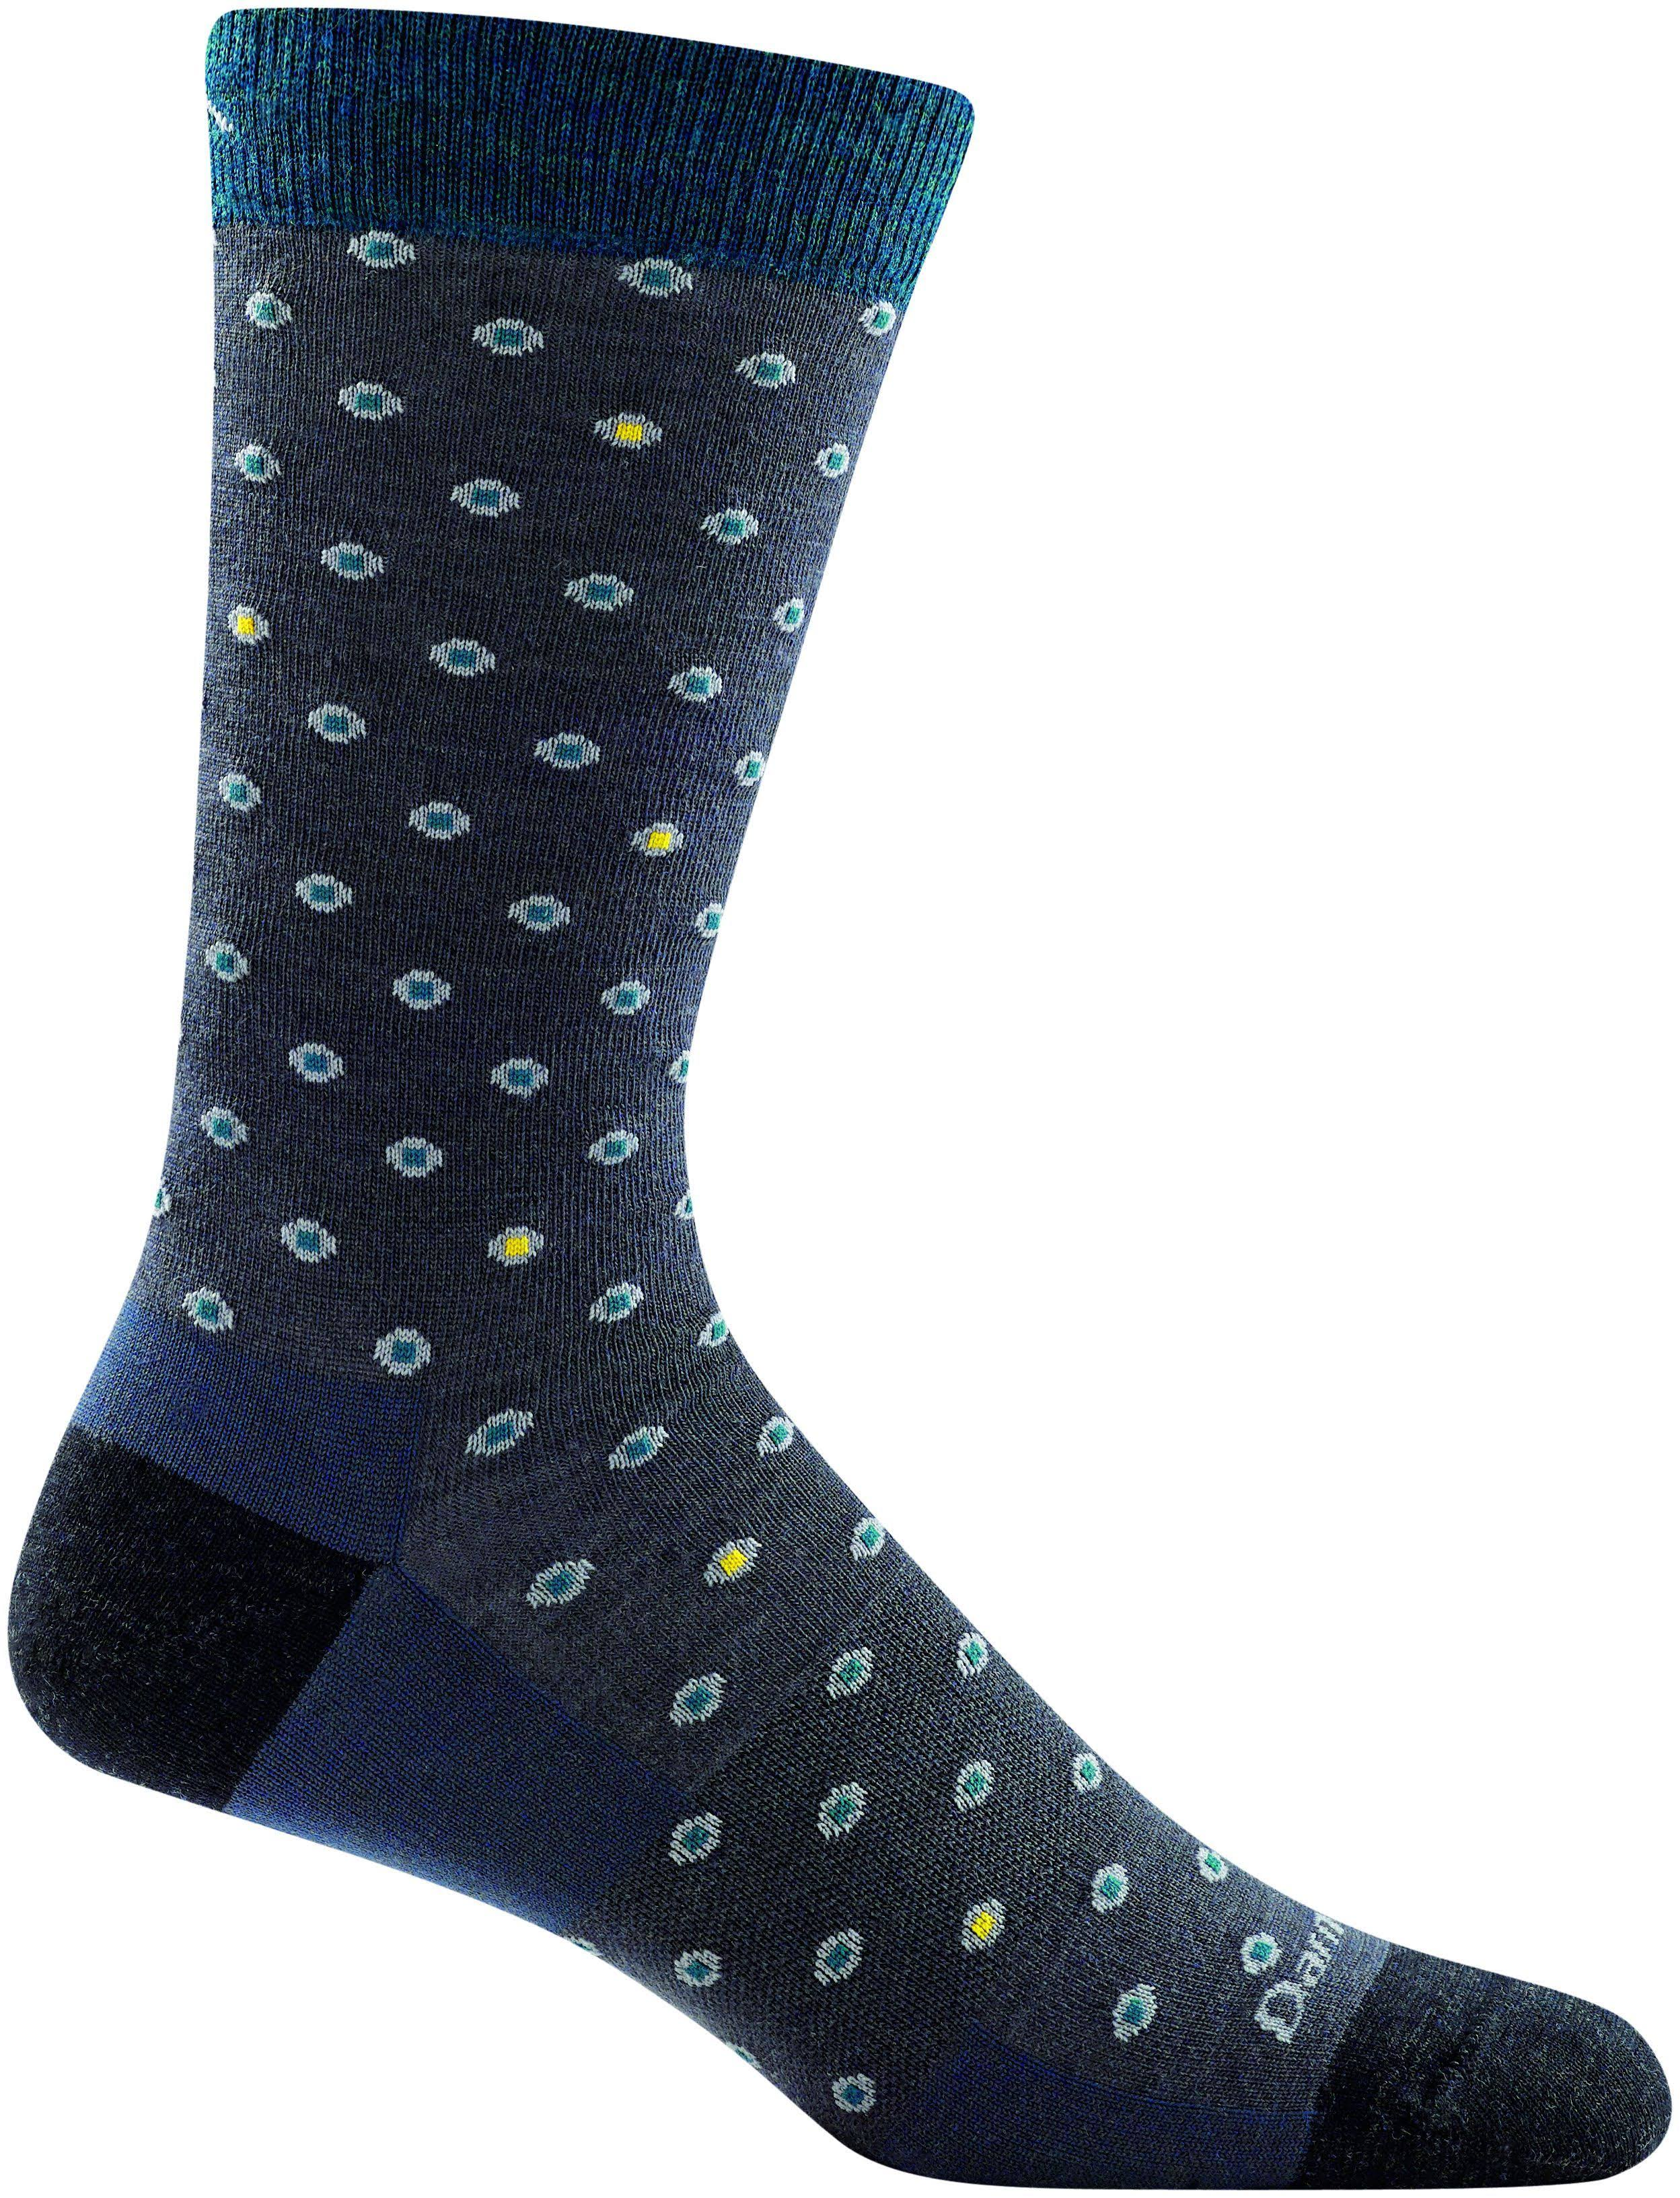 Darn Tough Fish Eye Crew Light Socks - Men's Gray / XL